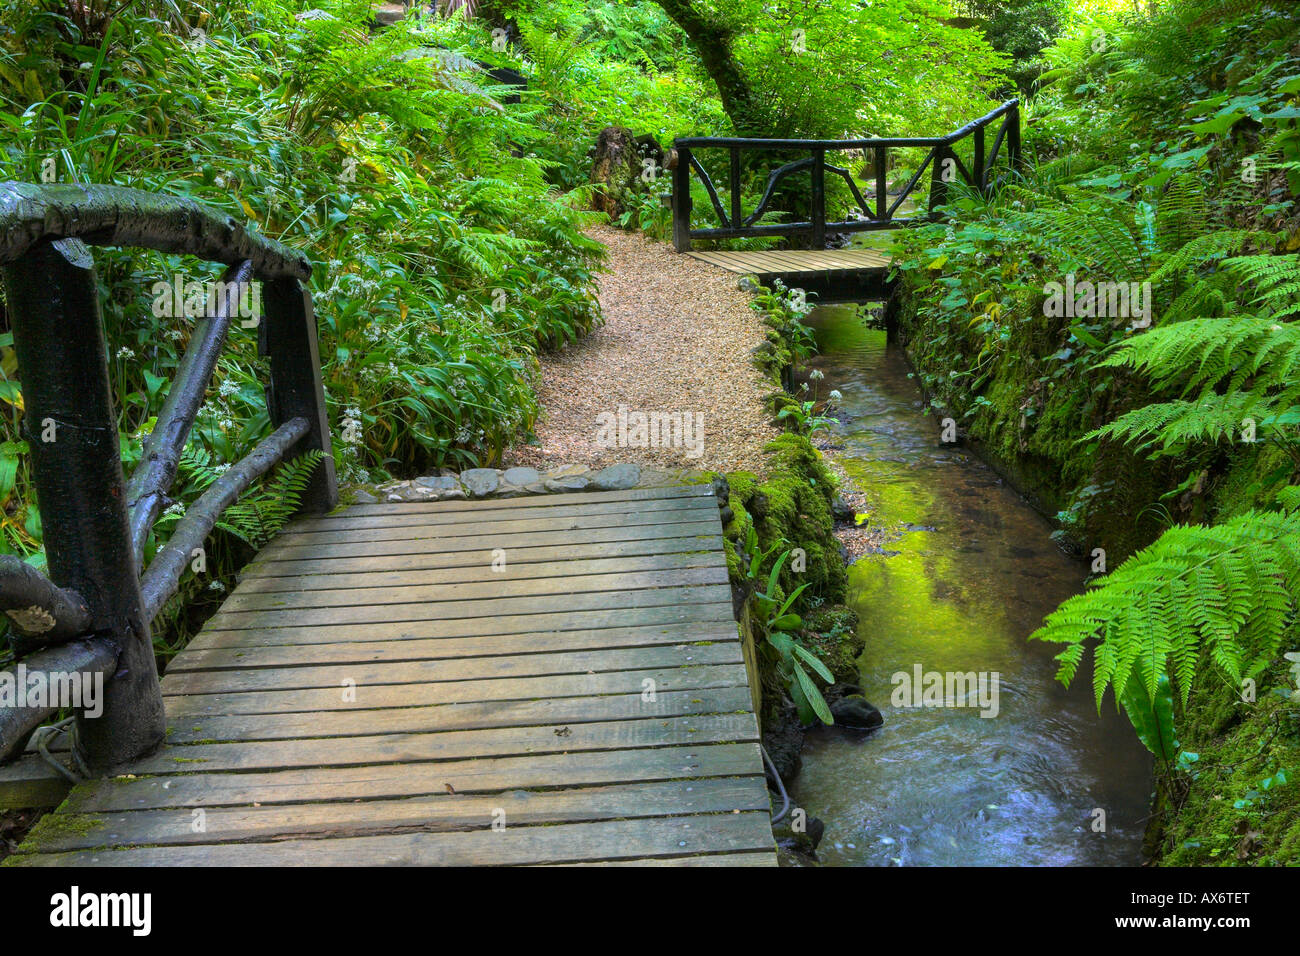 Walkways through the lush valley of Shanklin Chine, Isle of Wight - Stock Image